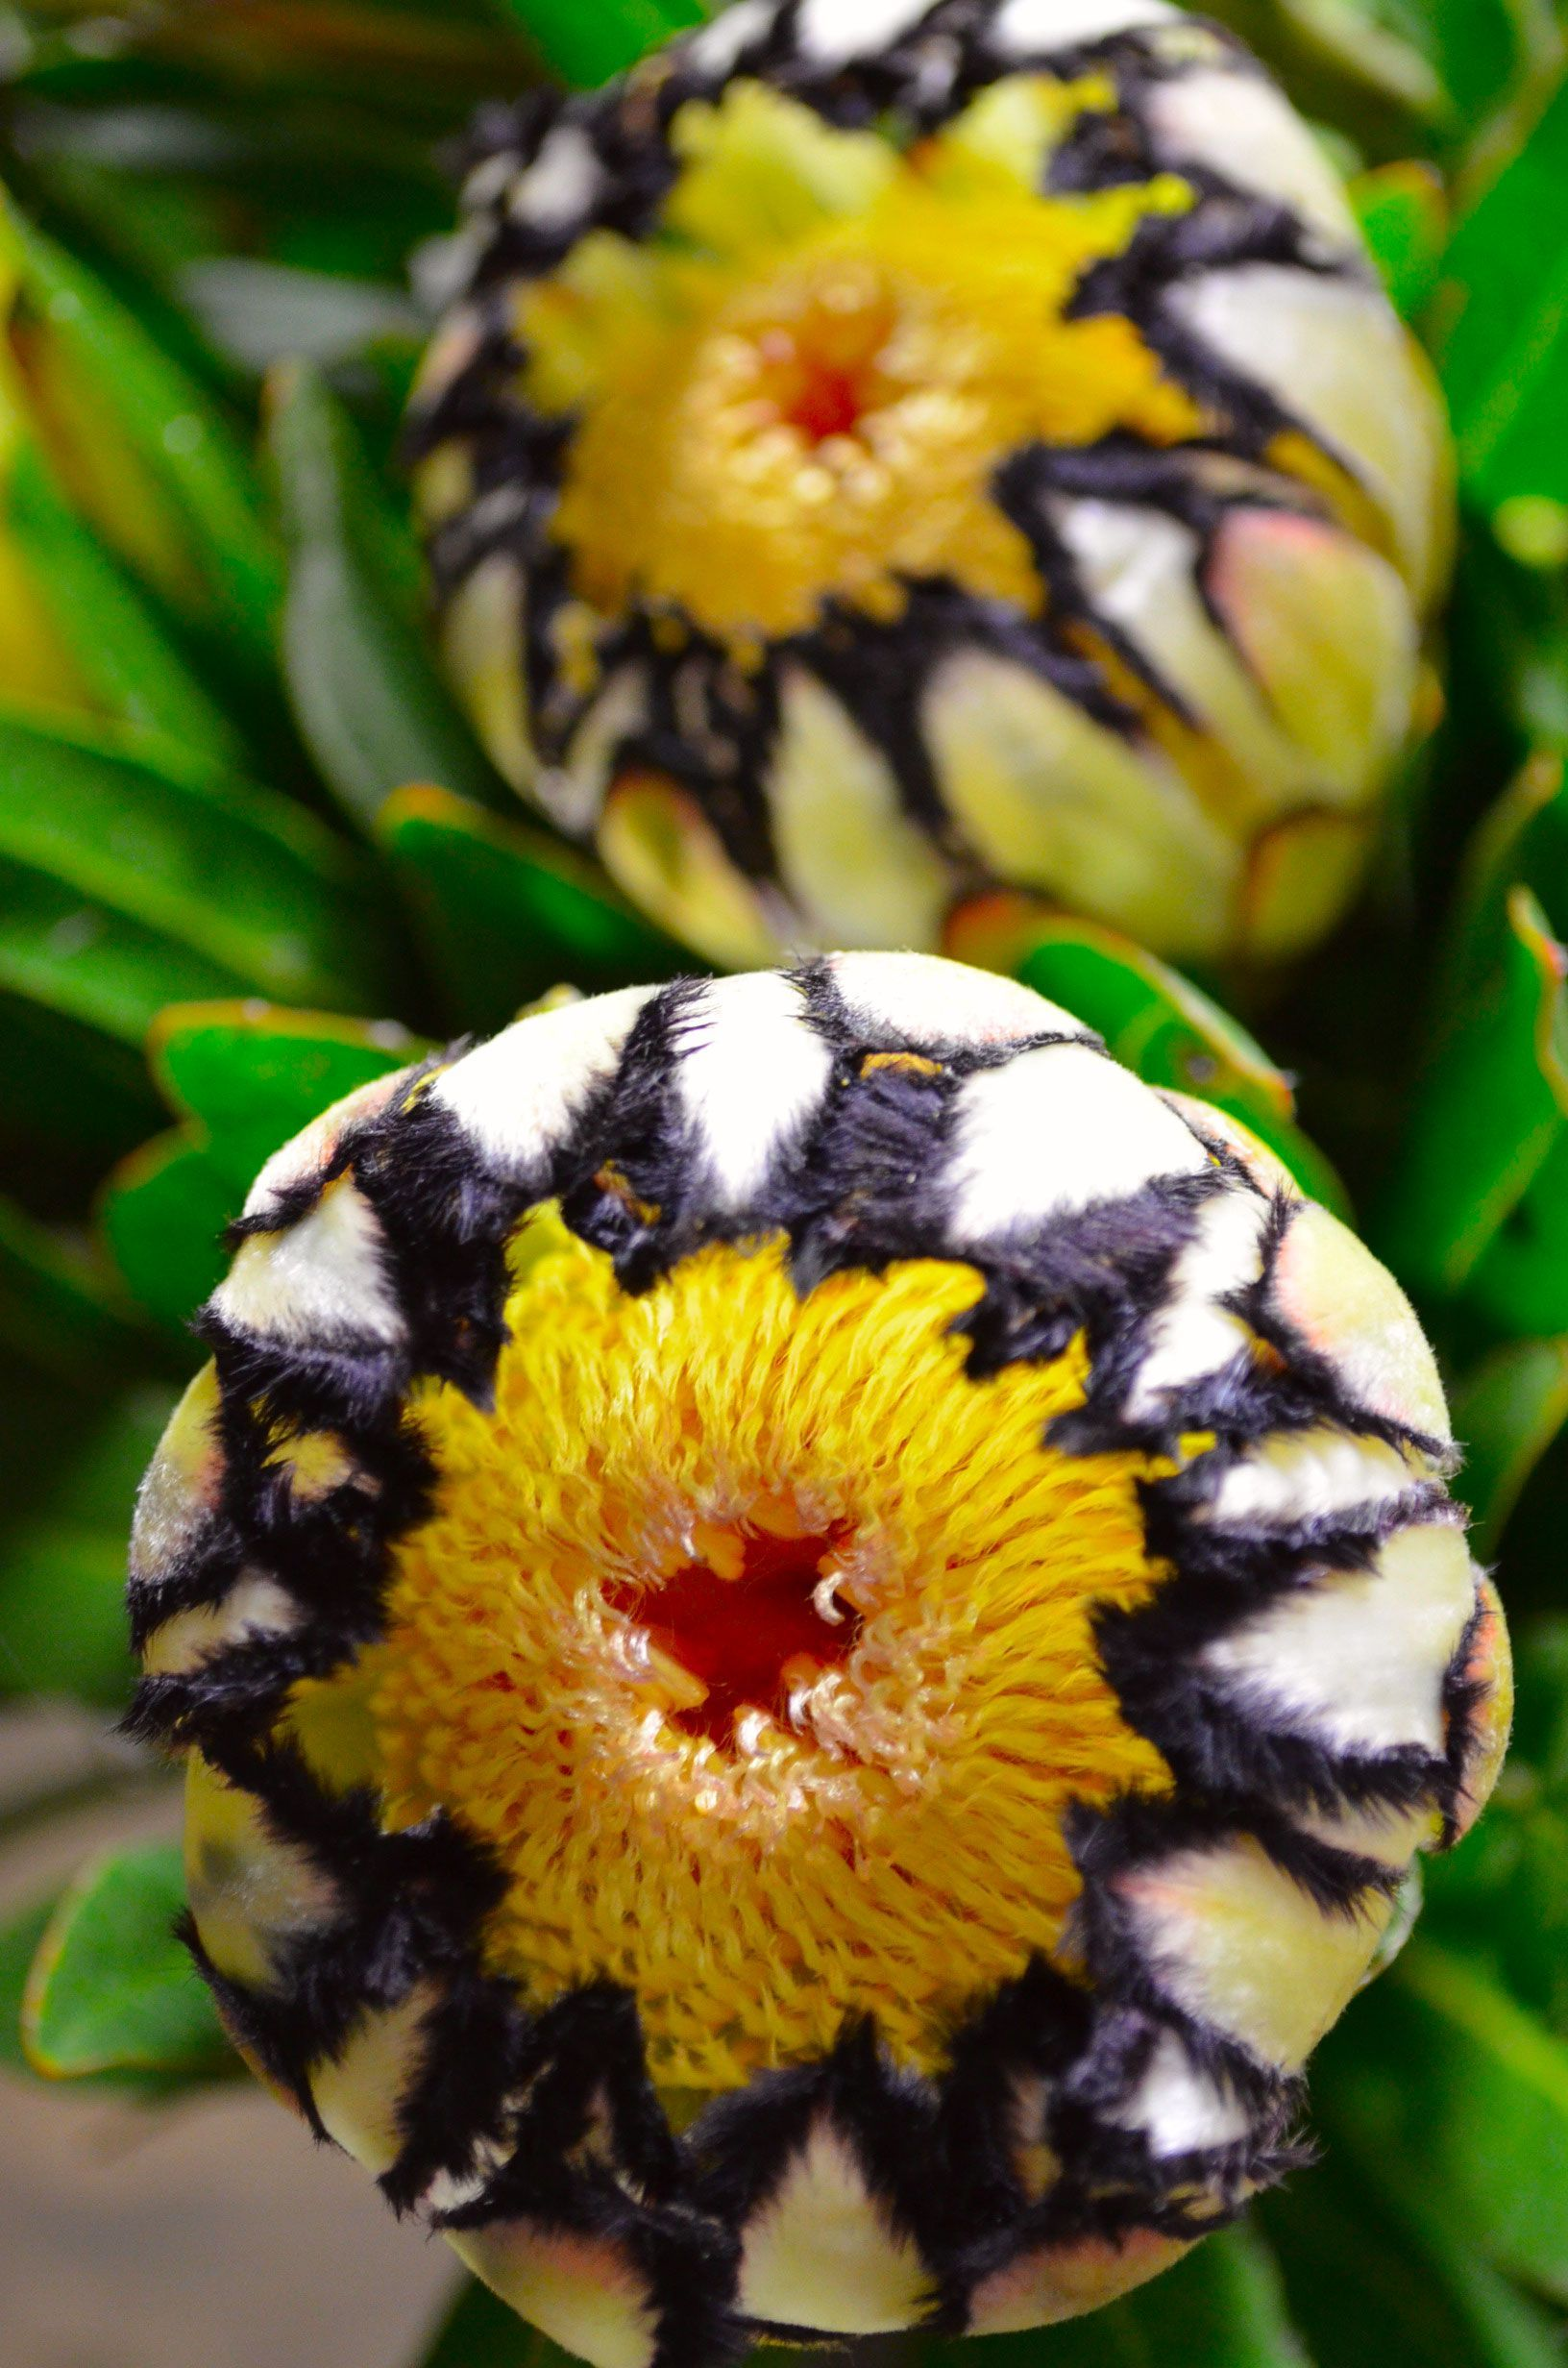 Incredible Birdflower Feathered Repinned Little Garden Hope Find And Can For My Irepinned And Hope I Unusual Flowers Strange Flowers Protea Flower